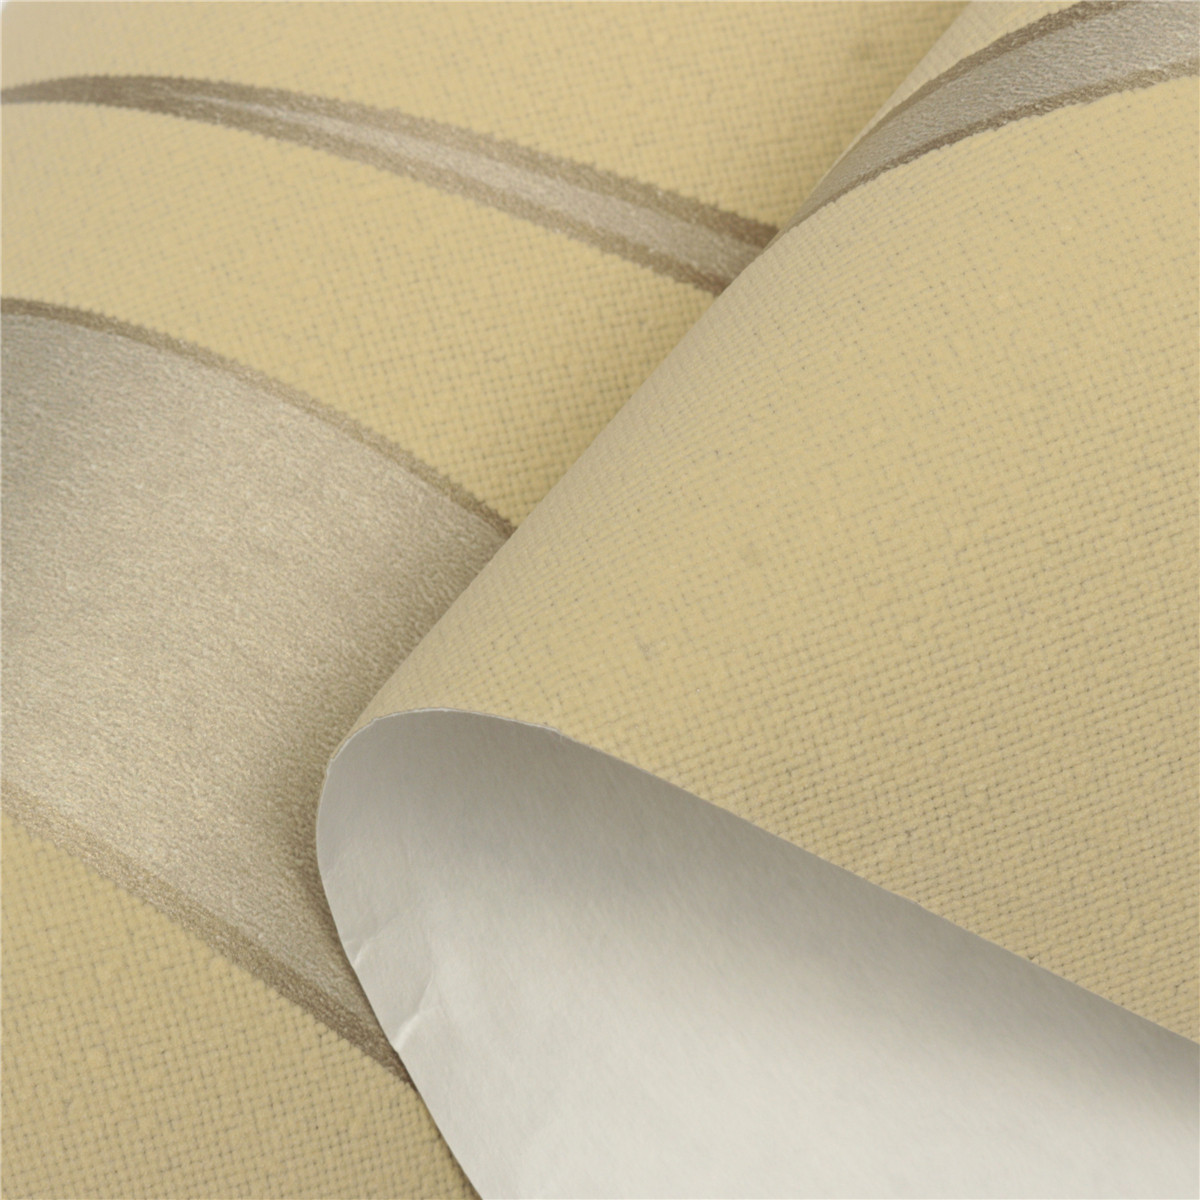 3d Wave Flocking Wallpaper 10m 3d Crescent Wave Stripes Embossed Non Woven Flocking